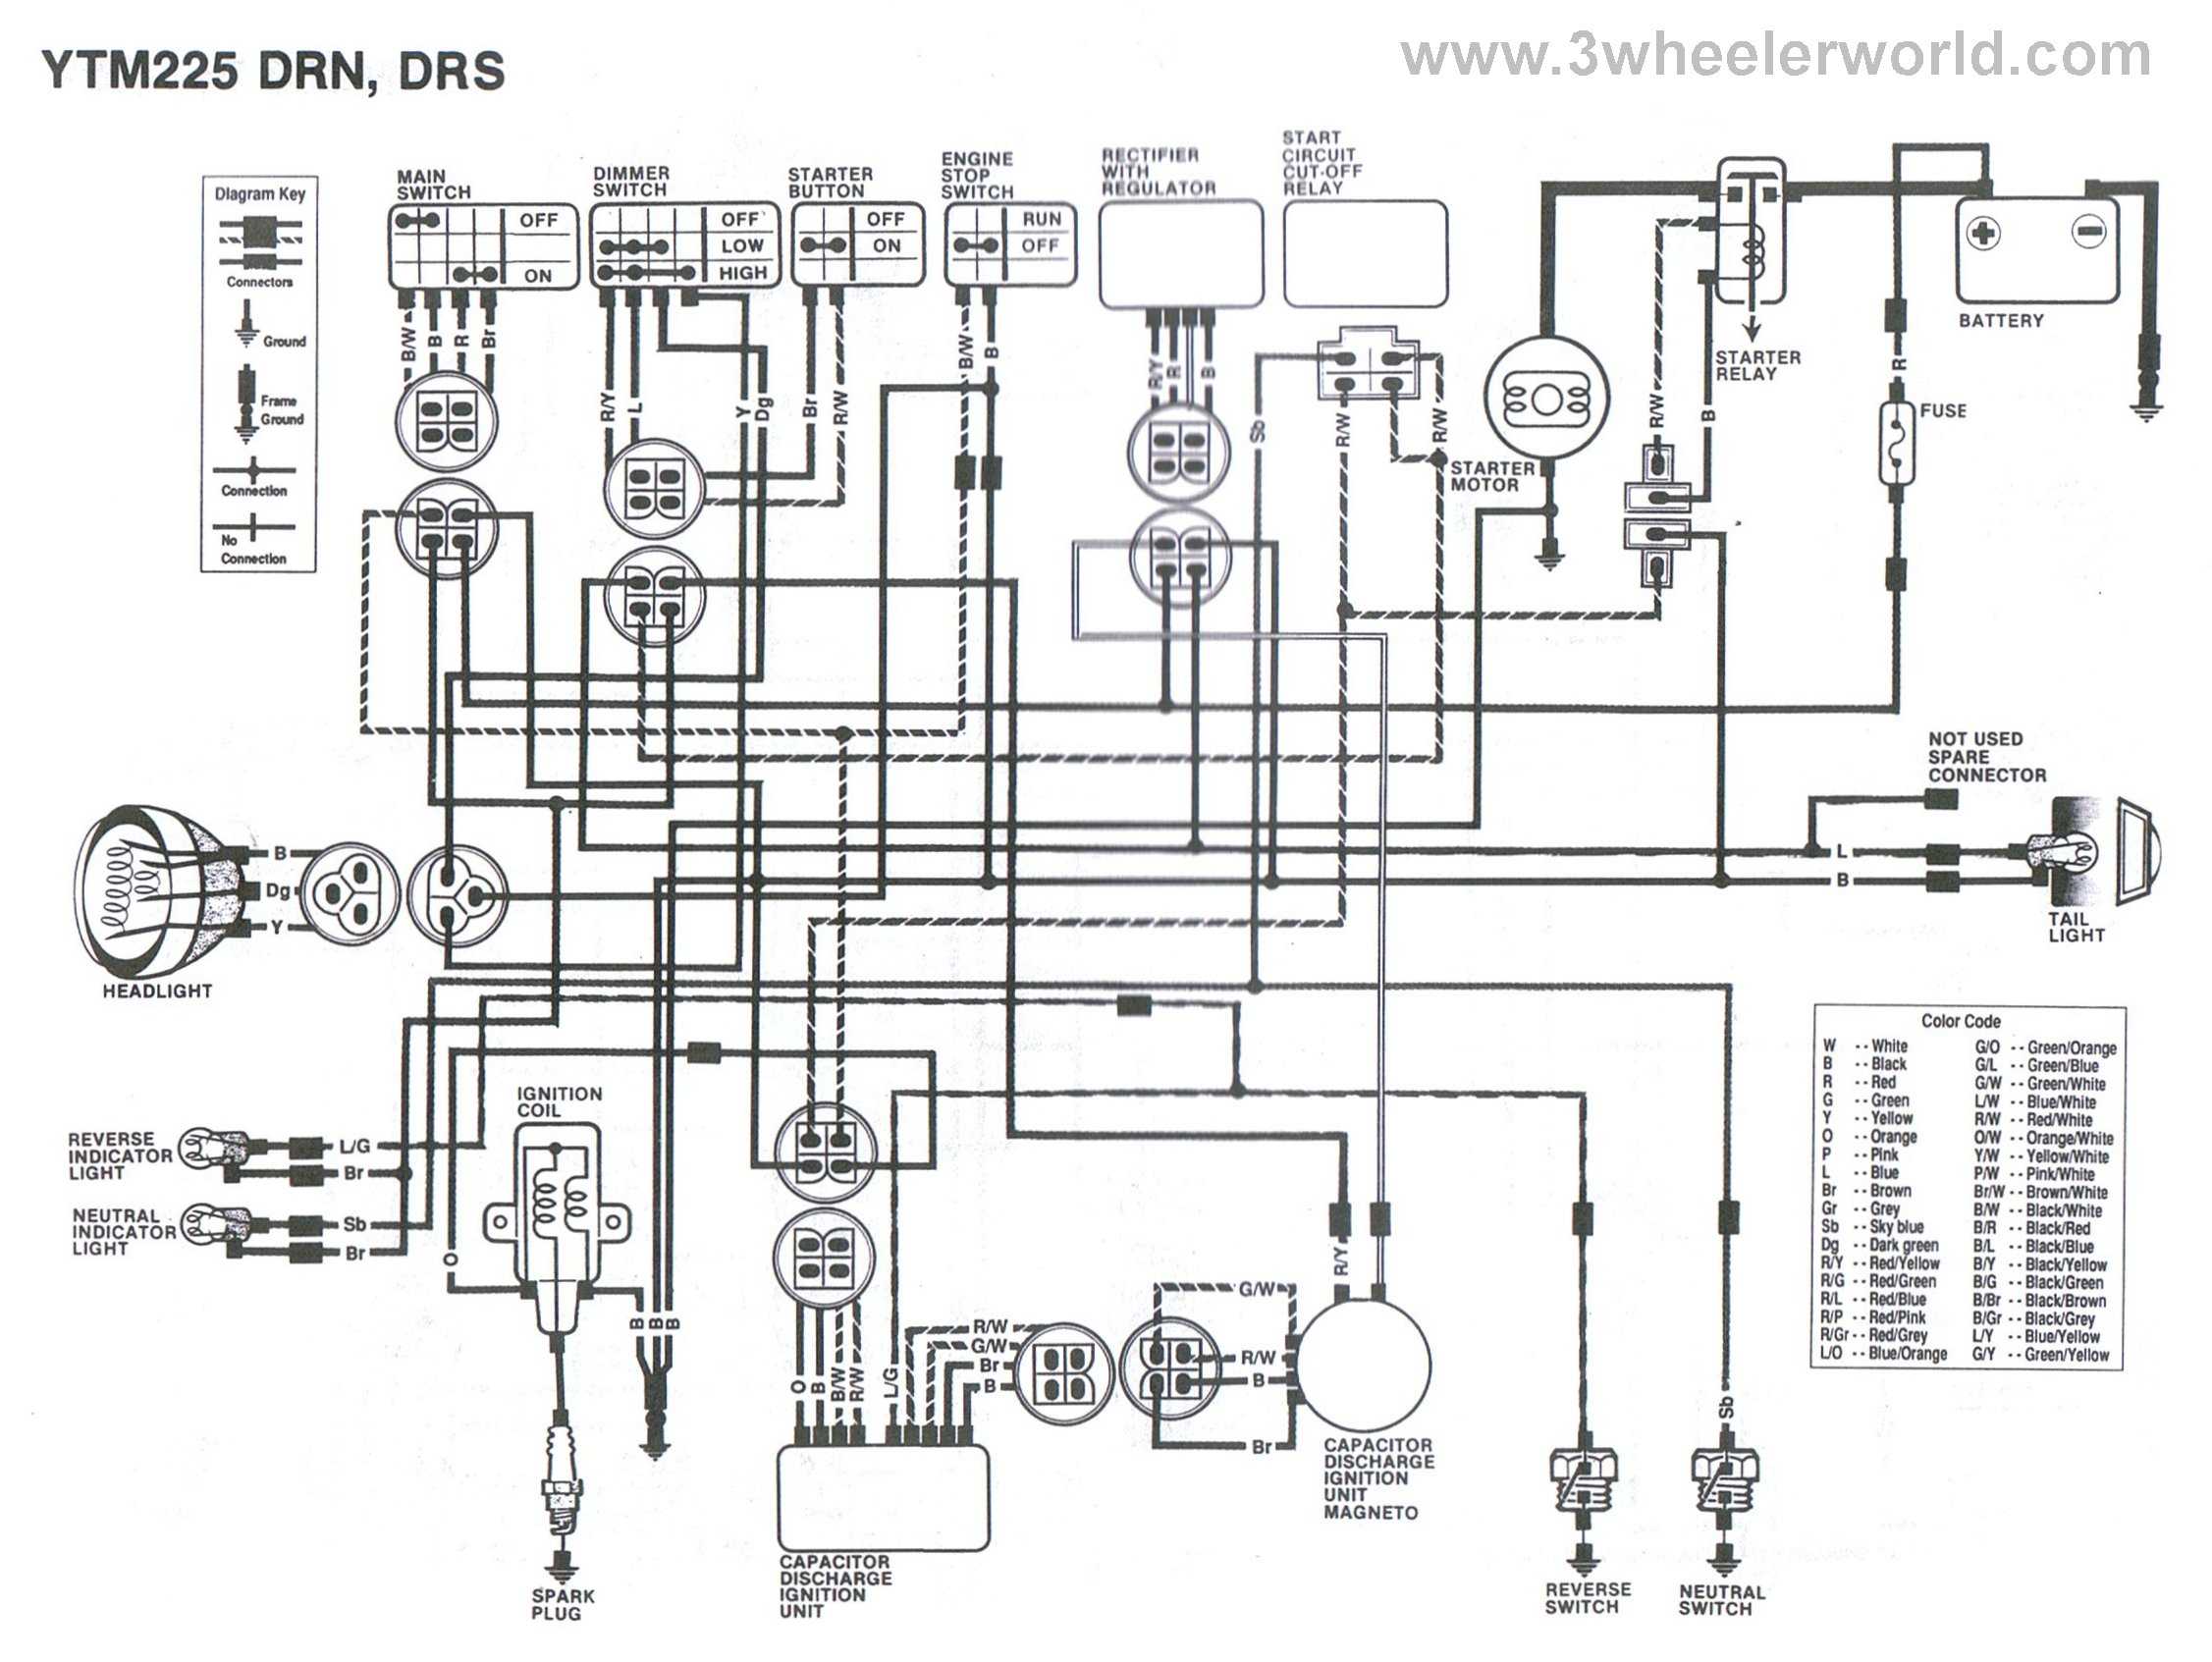 Yamaha Moto 4 Wiring Diagram on yamaha warrior 350 wiring diagram